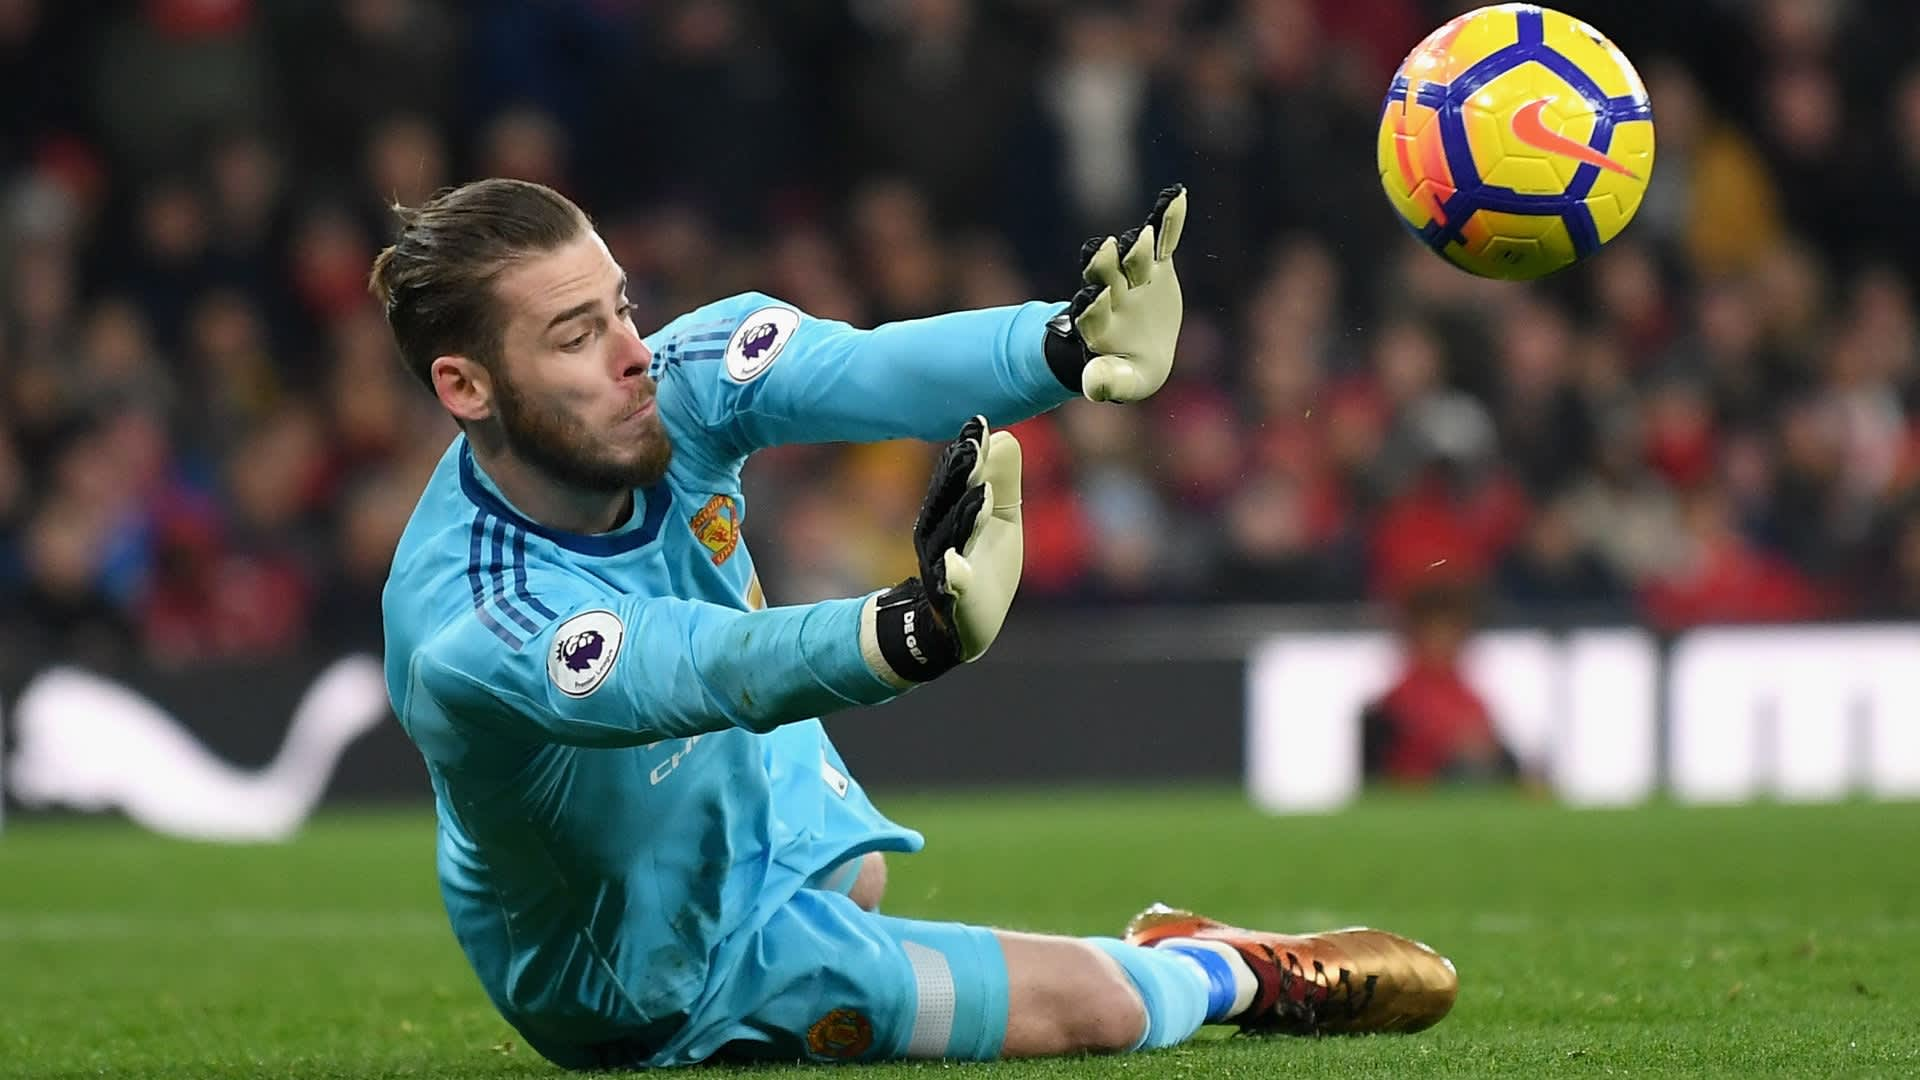 David De Gea, goalie for Manchester United